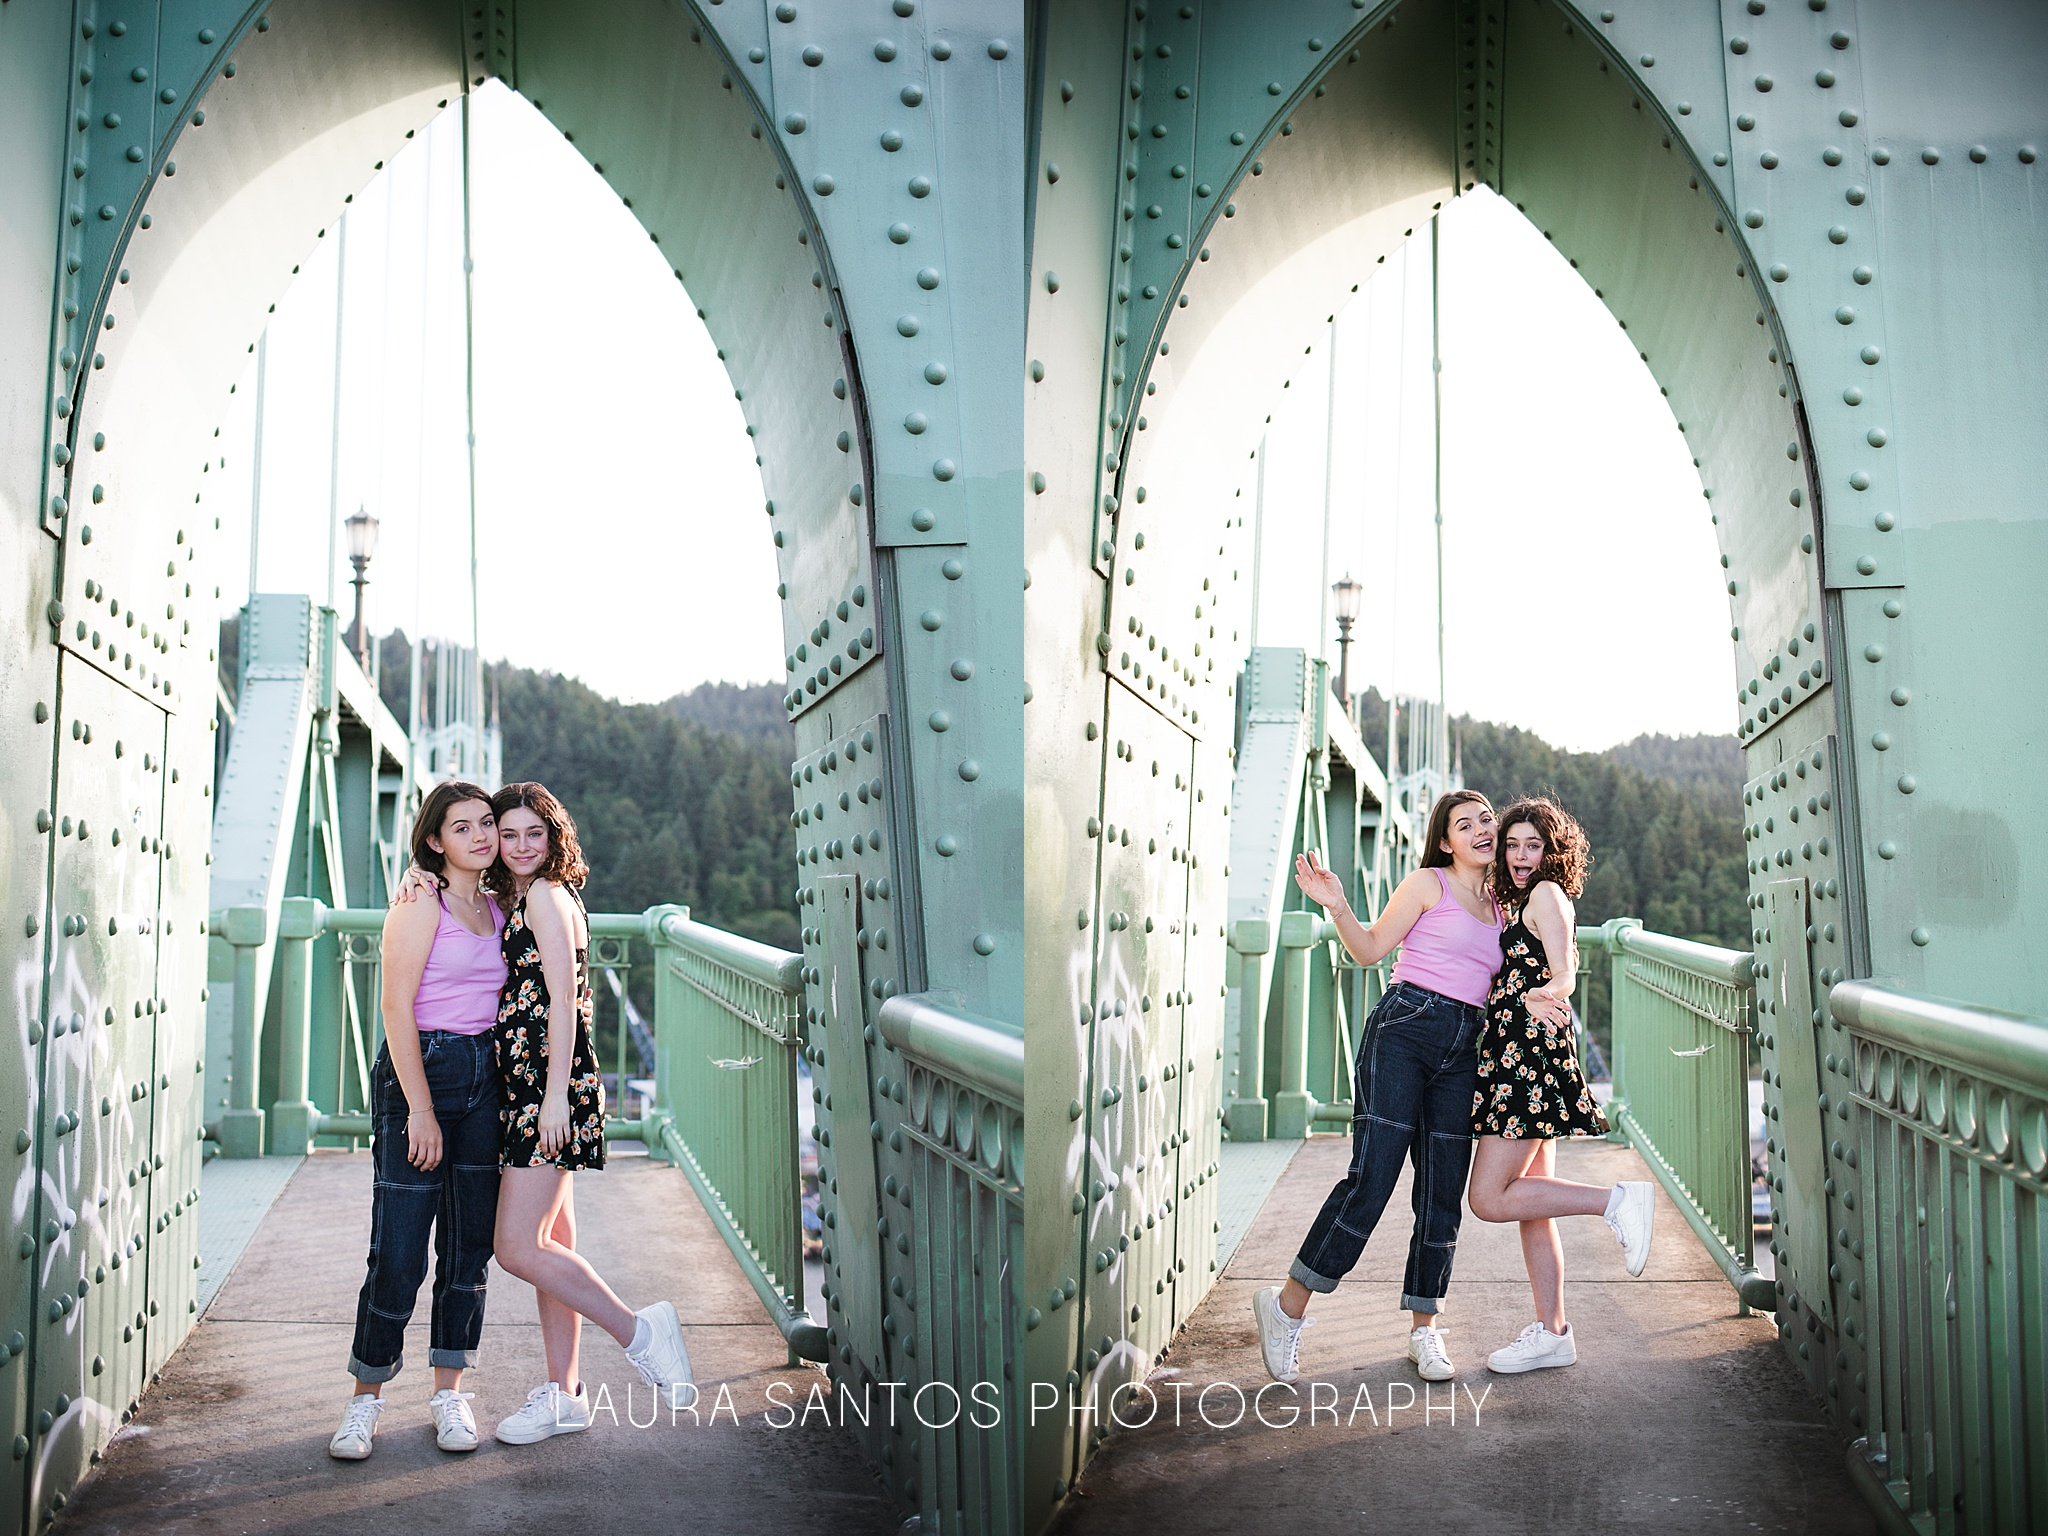 Laura Santos Photography Portland Oregon Family Photographer_0993.jpg